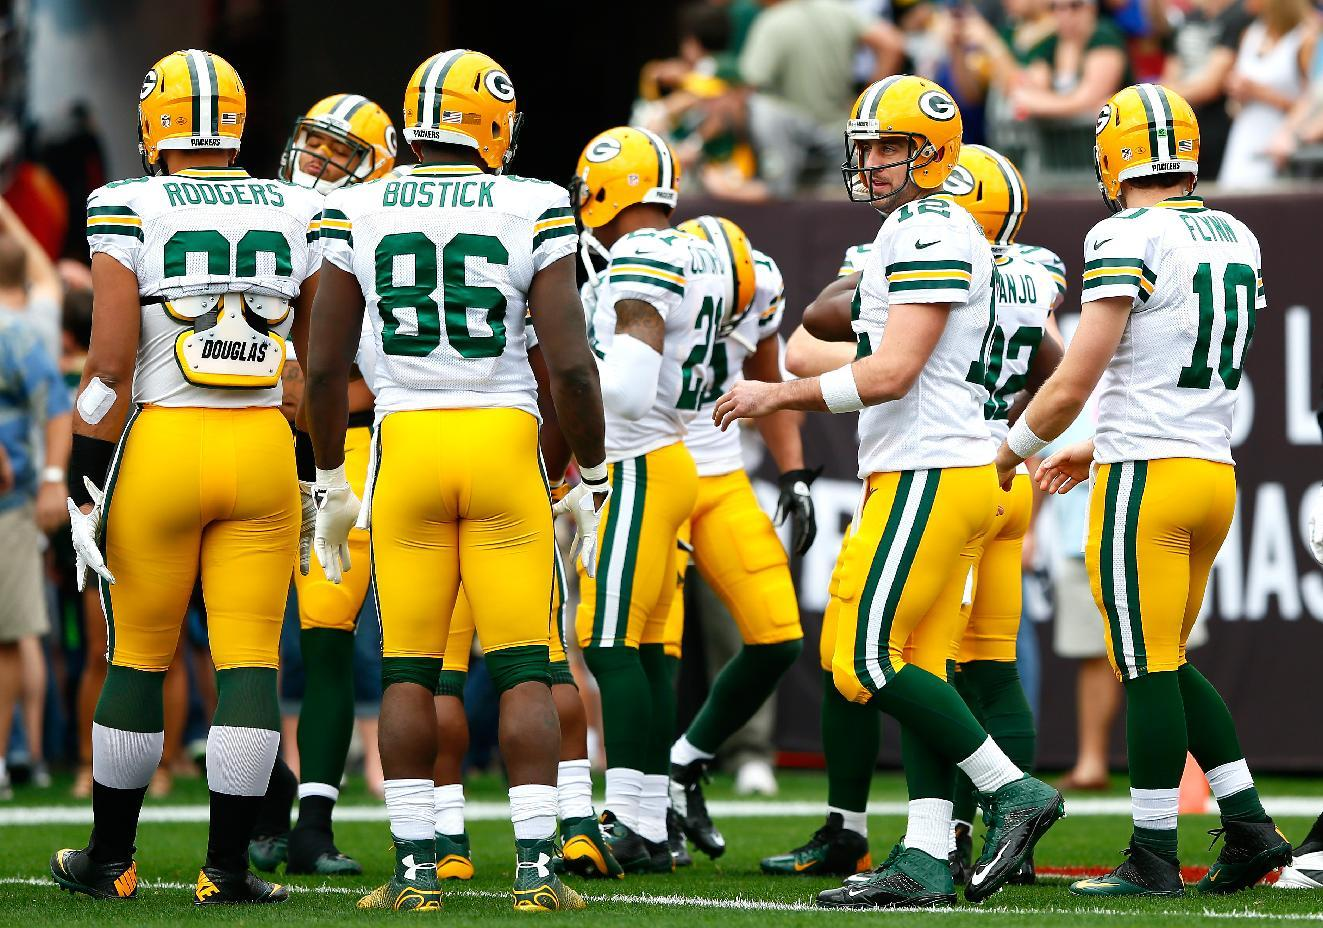 Packers face Lions in marquee matchup